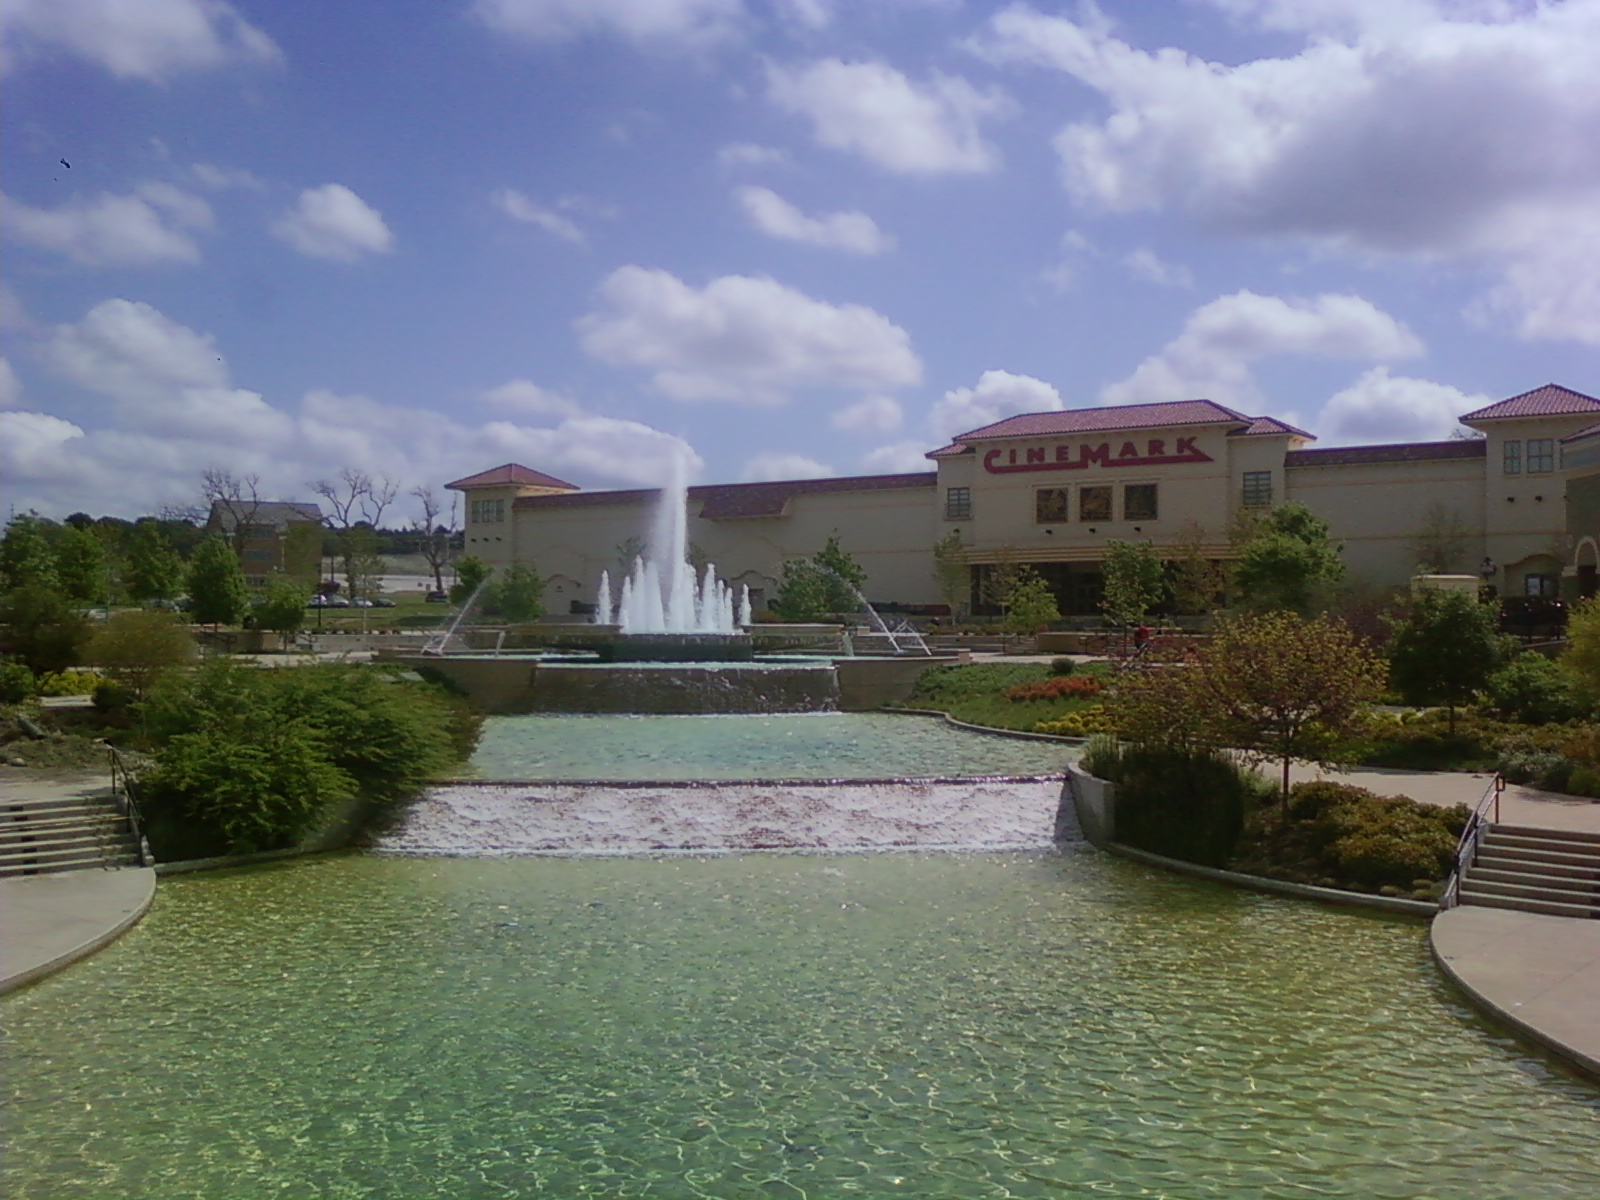 Homes for Sale in Rockwall TX: Dallas Suburbs Real Estate Trends